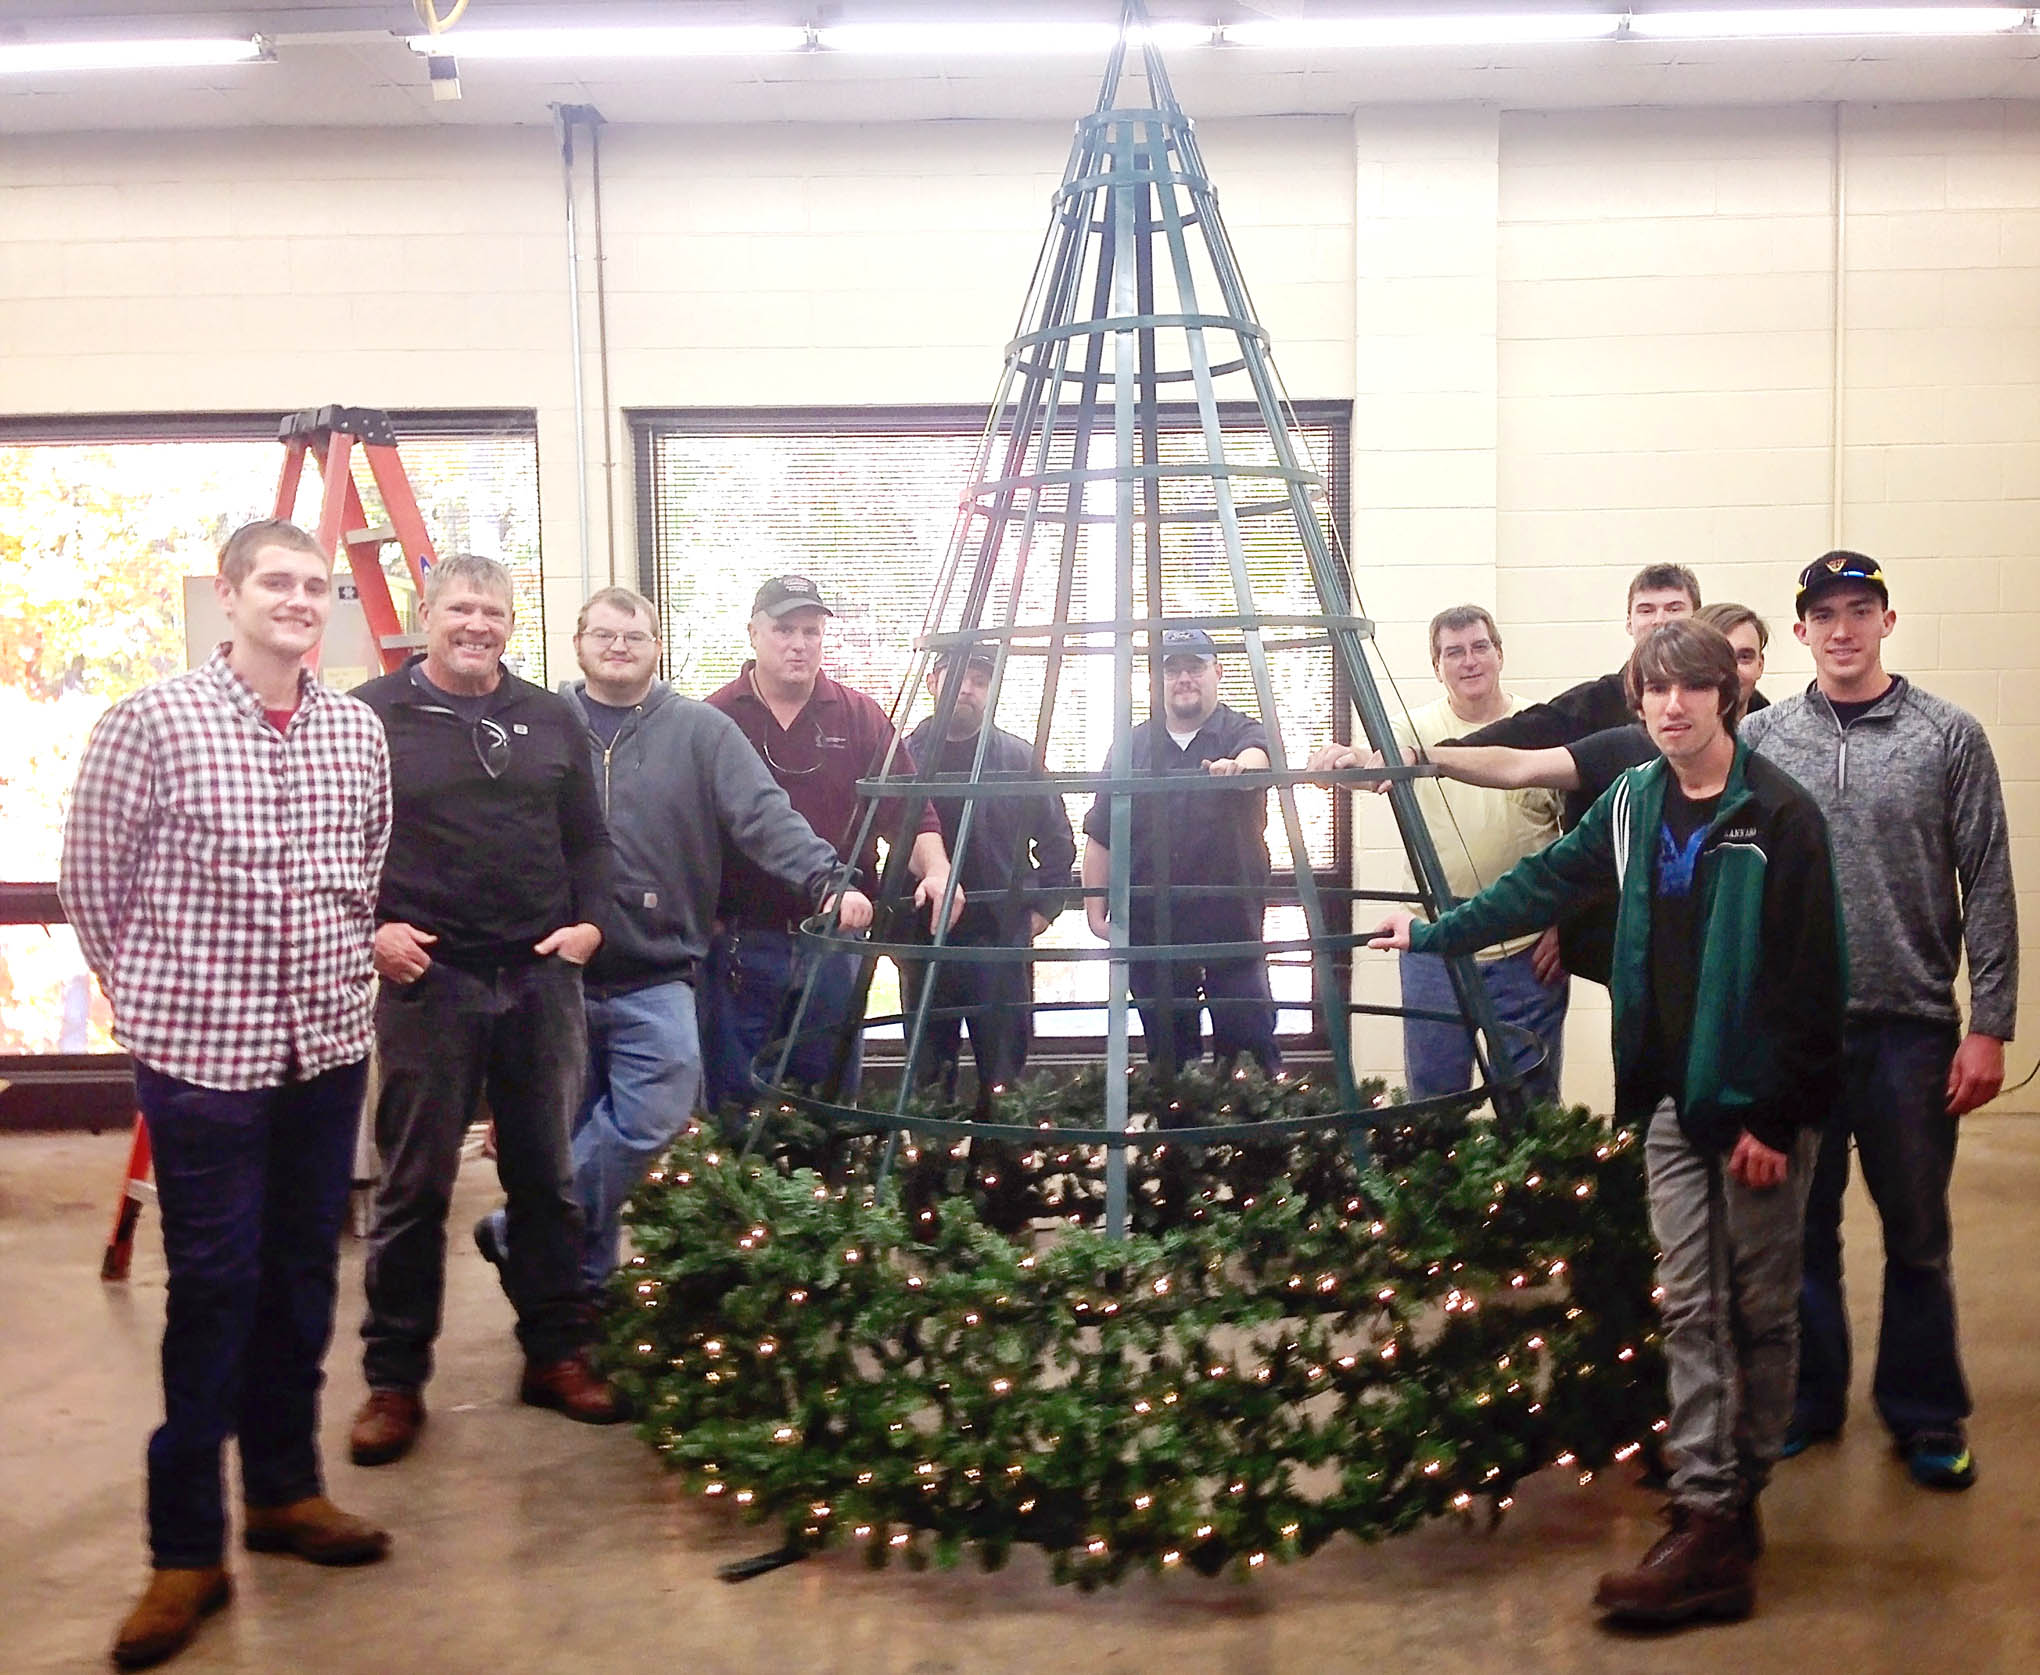 Click to enlarge,  The Central Carolina Community College Welding Technology Fabrication 151 class has assembled the college's new Christmas tree. The annual Christmas tree lighting ceremony will take place on Thursday, Dec. 1, at 5:30 p.m. on the CCCC Lee Main Campus.